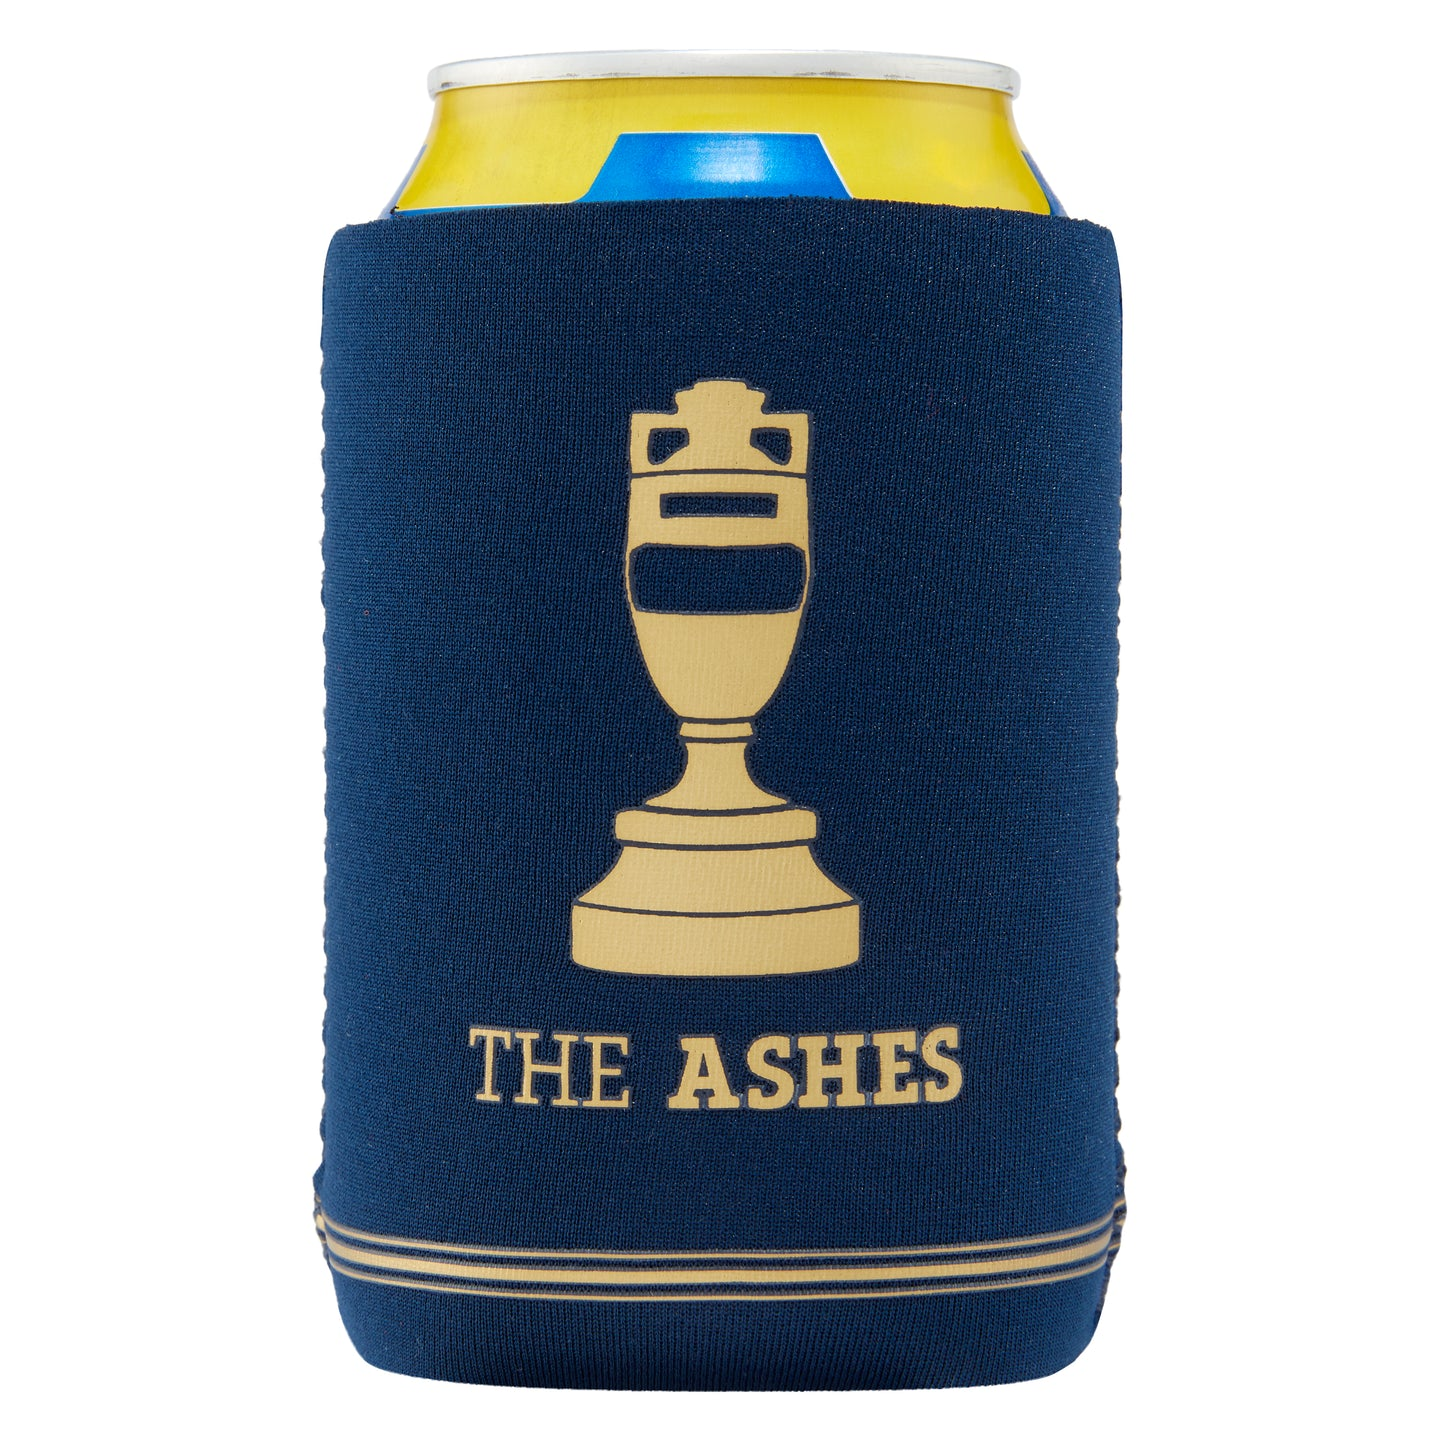 LORD'S ASHES URN STUBBY HOLDER